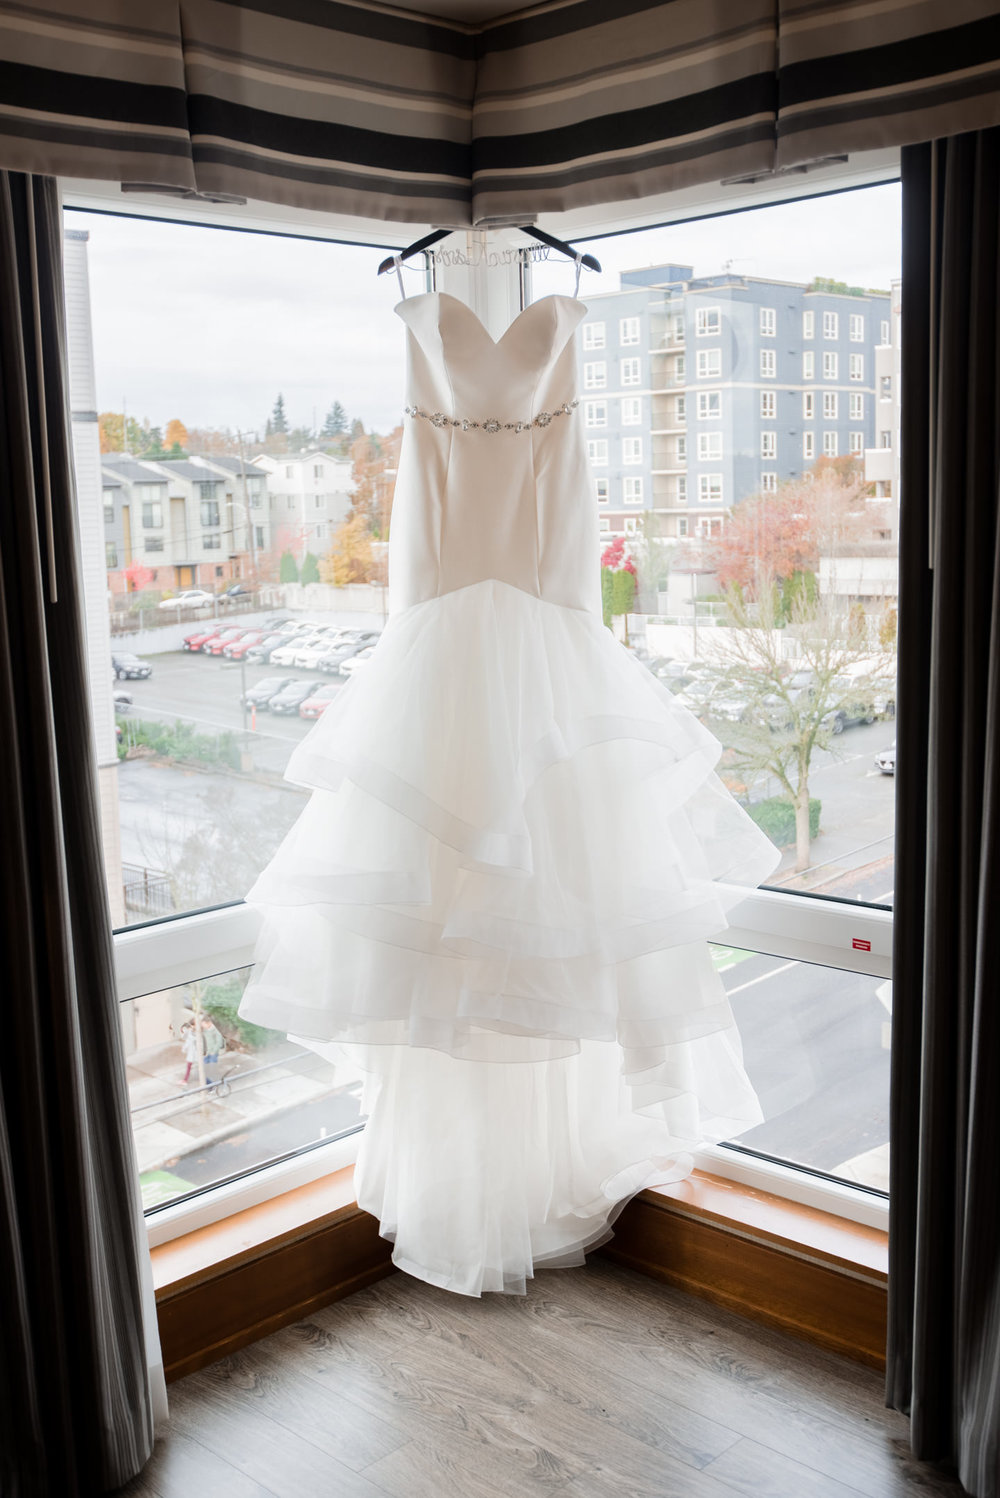 Bride's Dress at Watertown Hotel